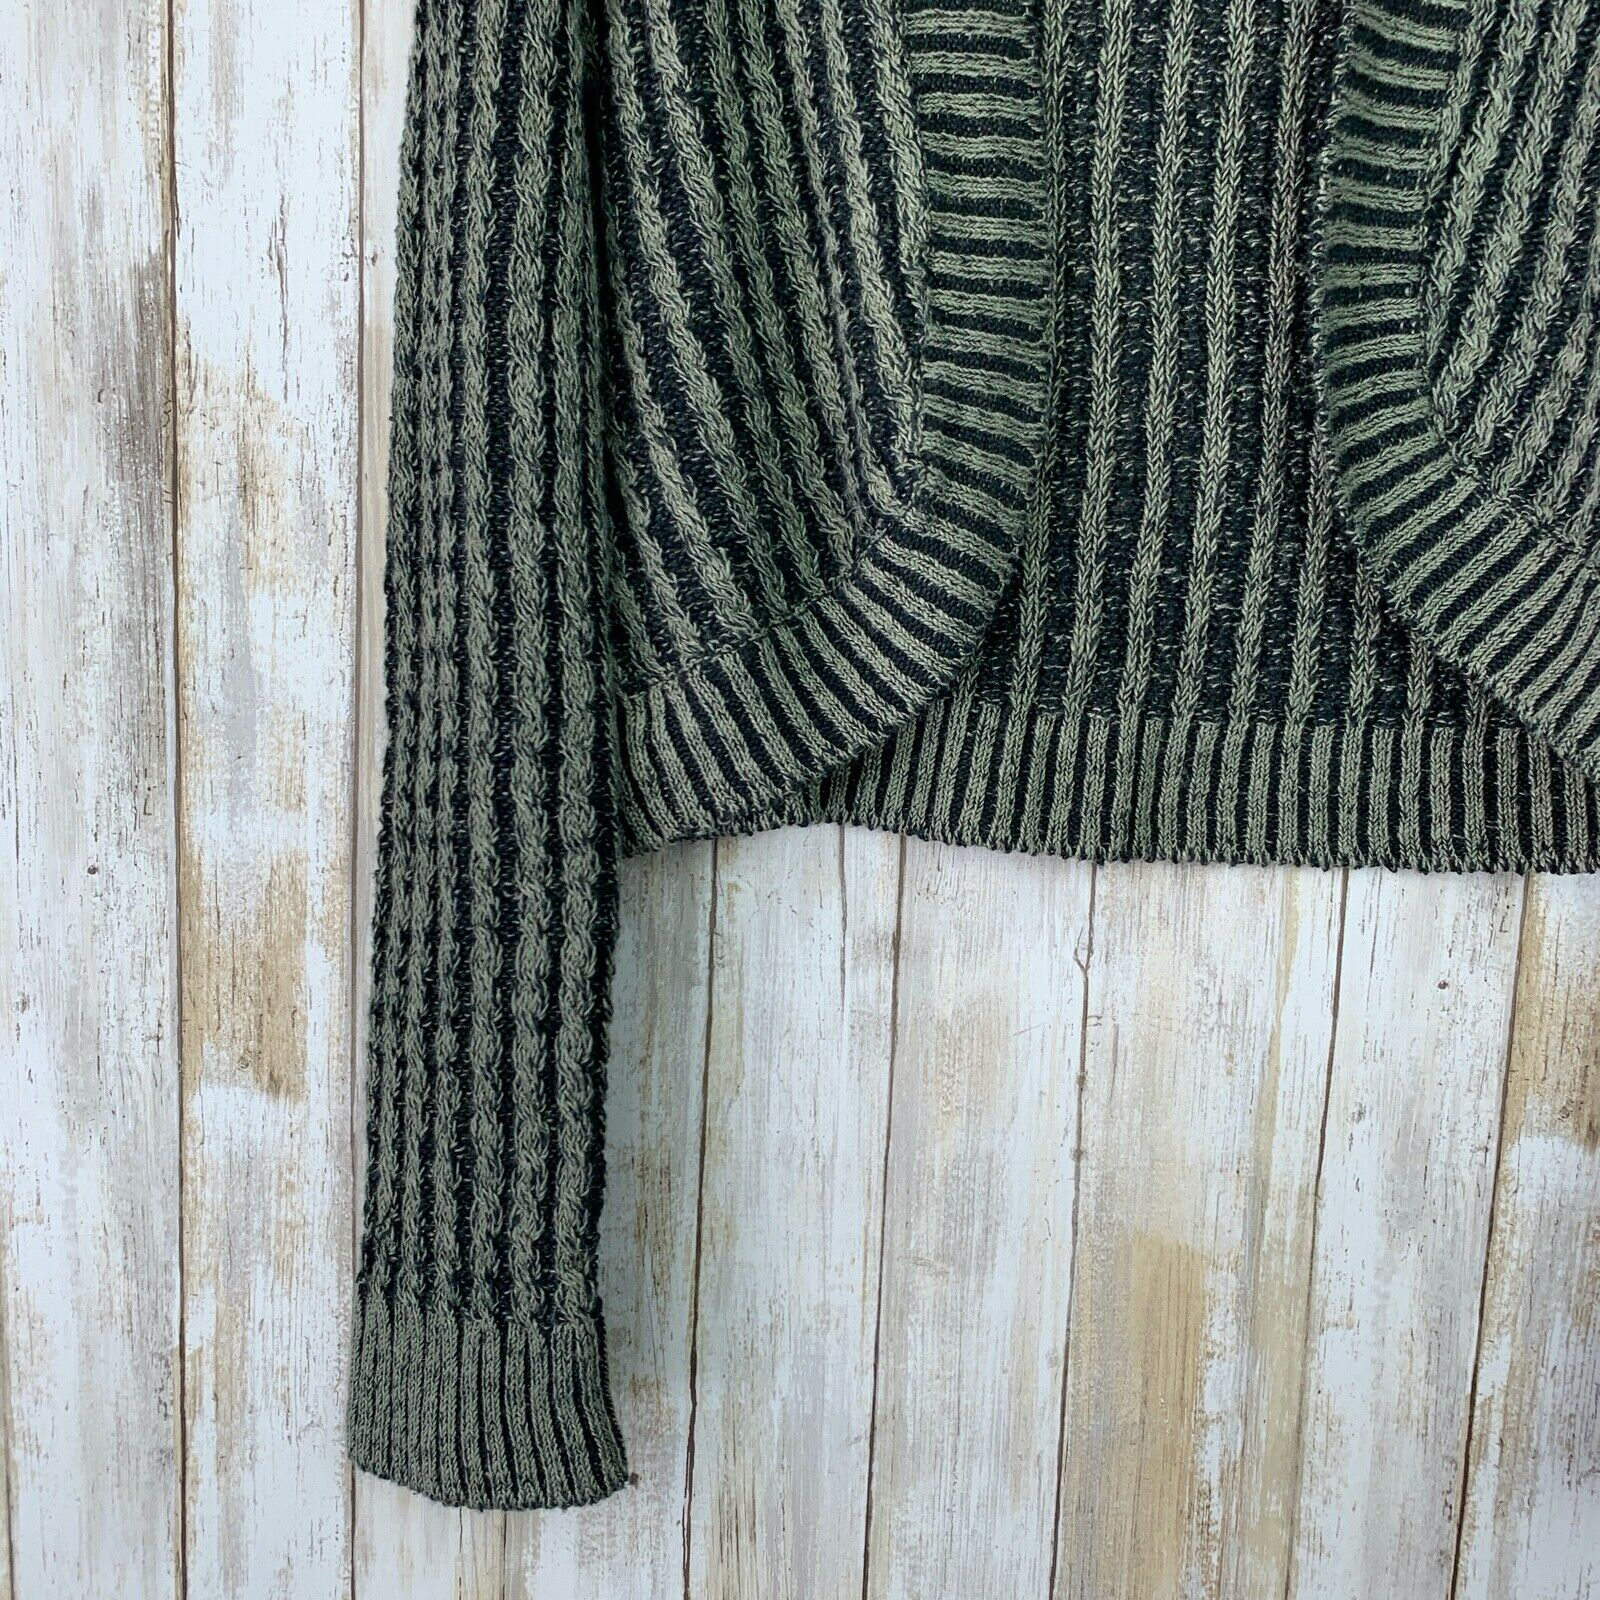 Inis Meain Linen Loose Knit Open Sweater Green Gr… - image 3